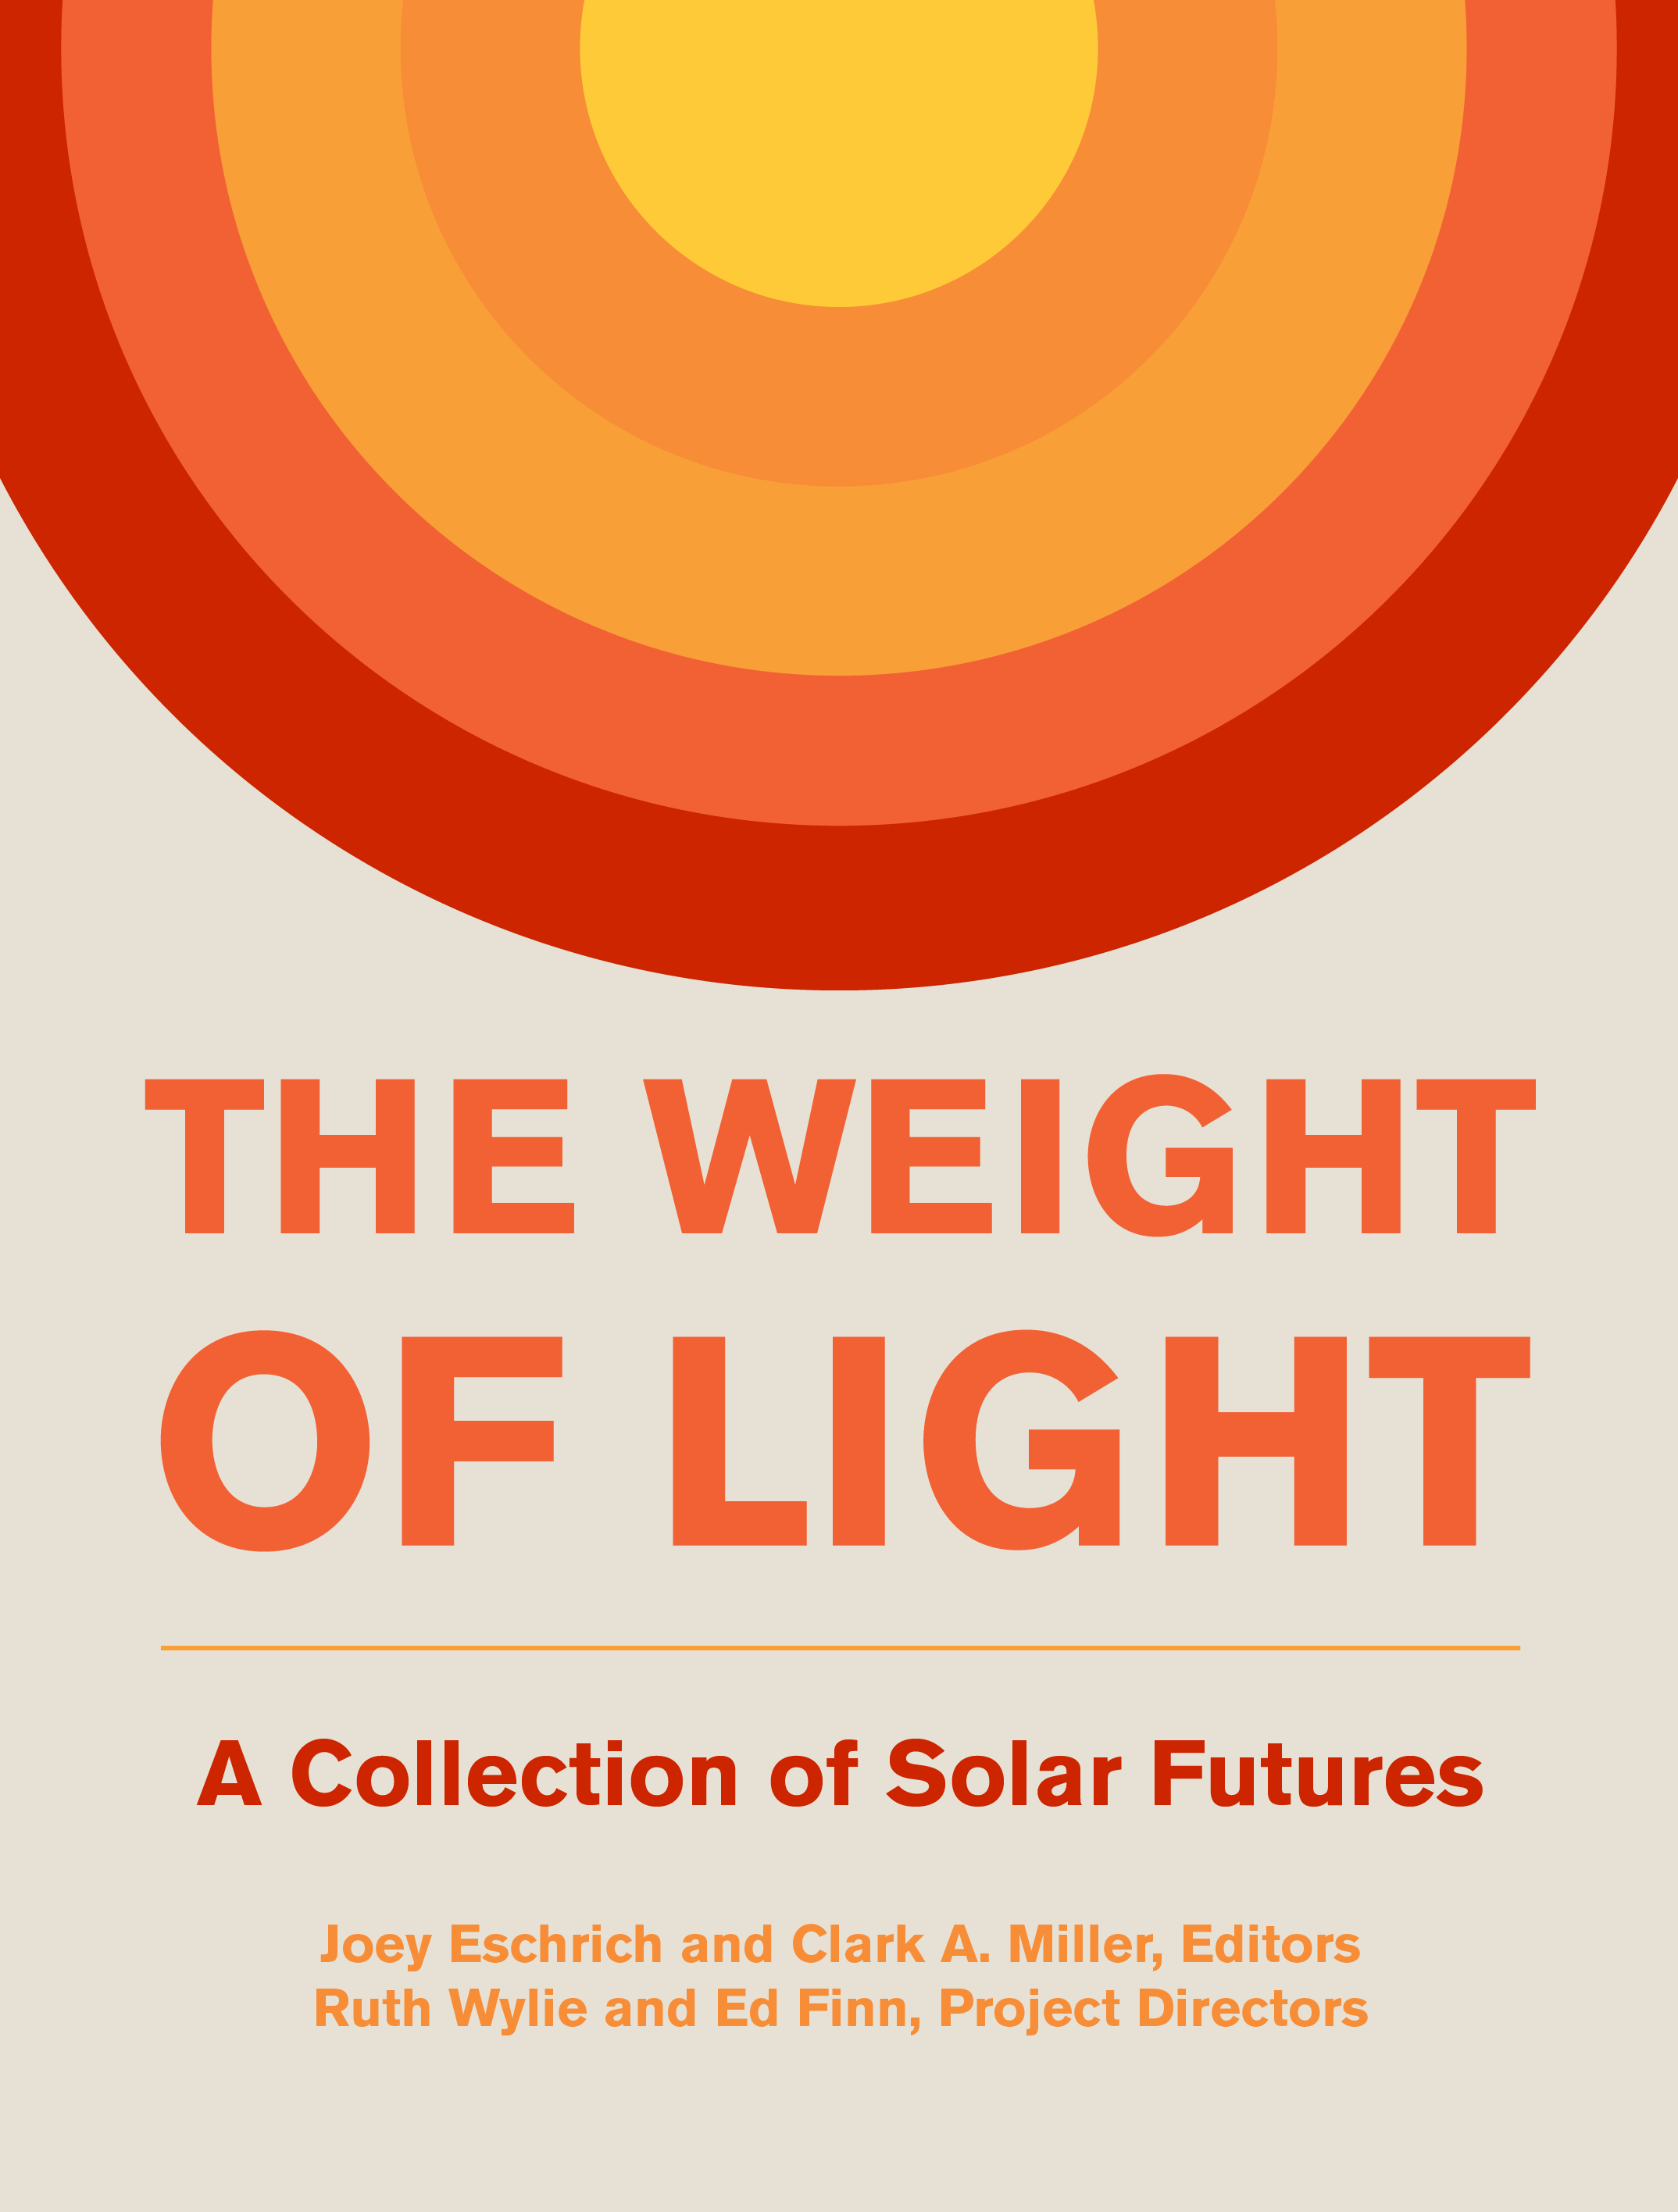 solarfutures-cover.png